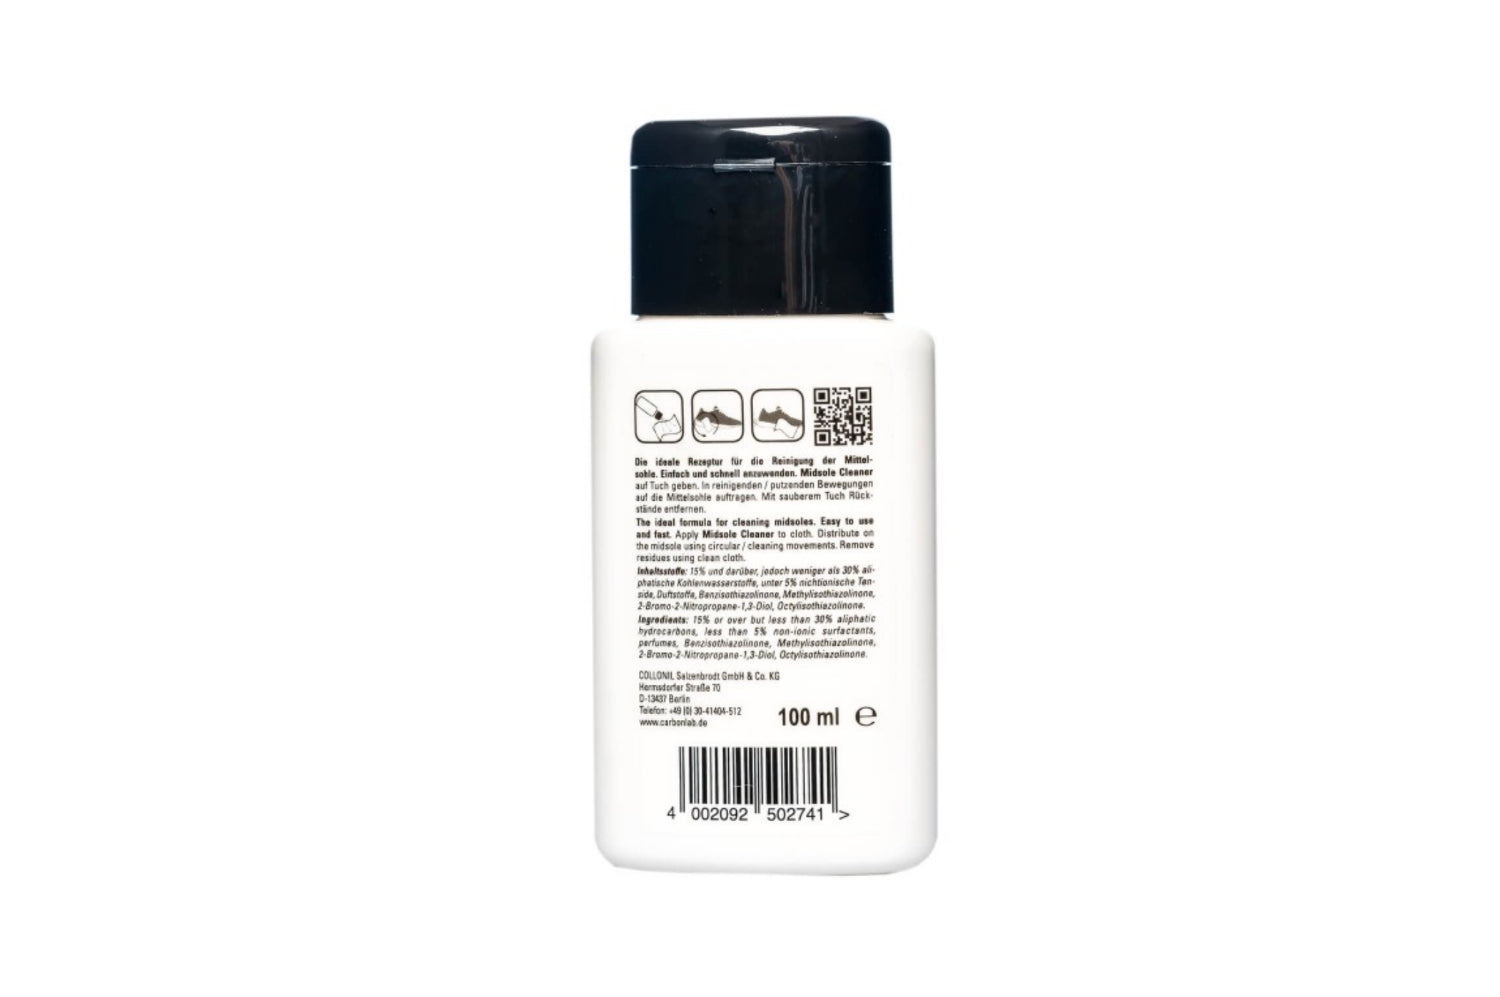 Midsole Cleaner 100ml - Schrittmacher Shop